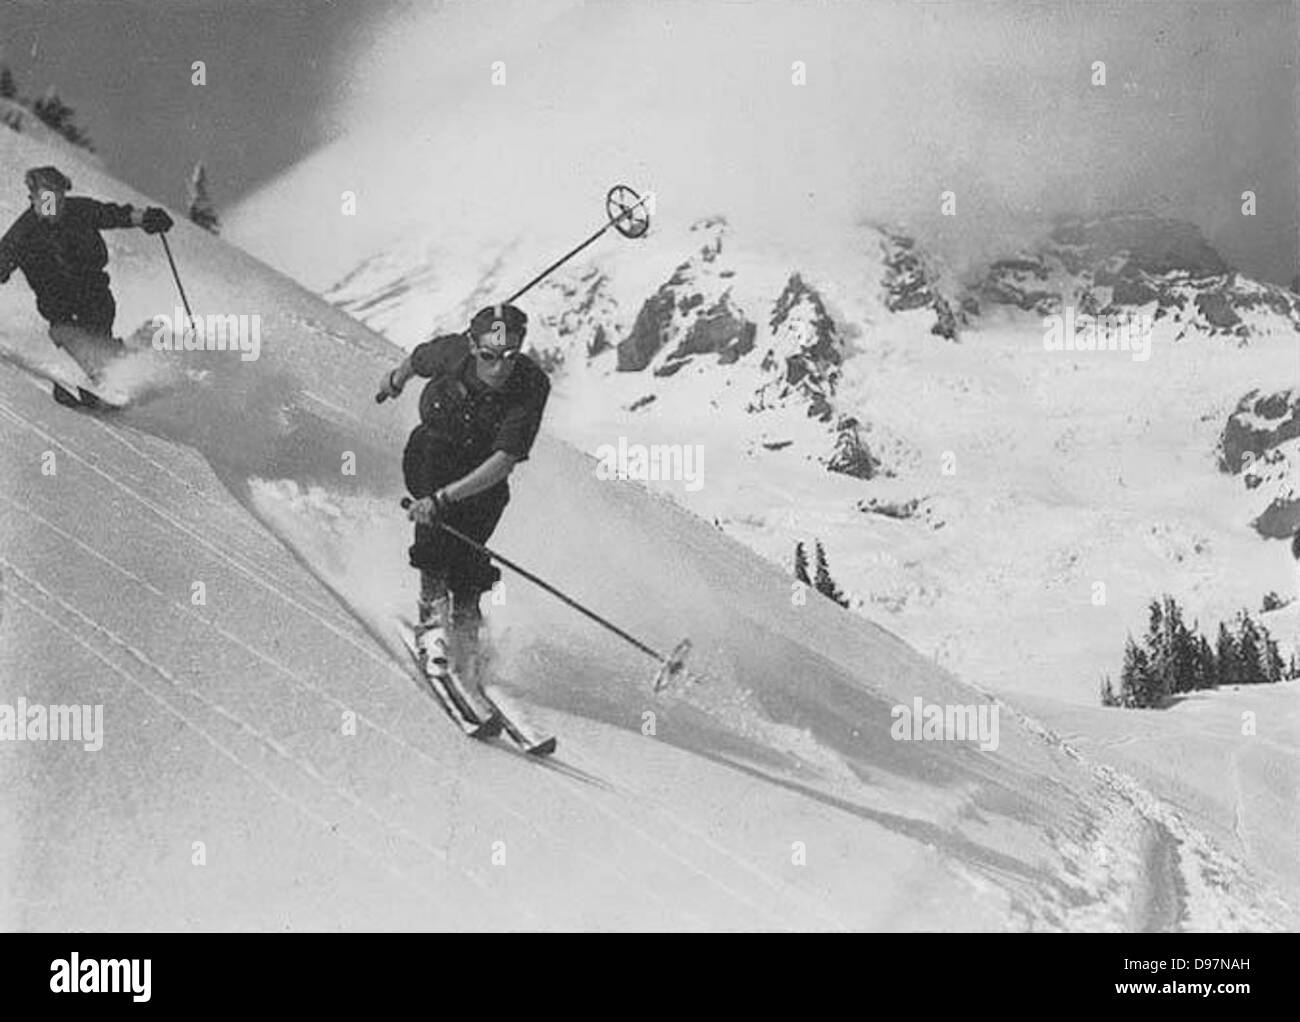 Two downhill skiers at Alta Vista in Paradise Park, Mount Rainier National Park - Stock Image